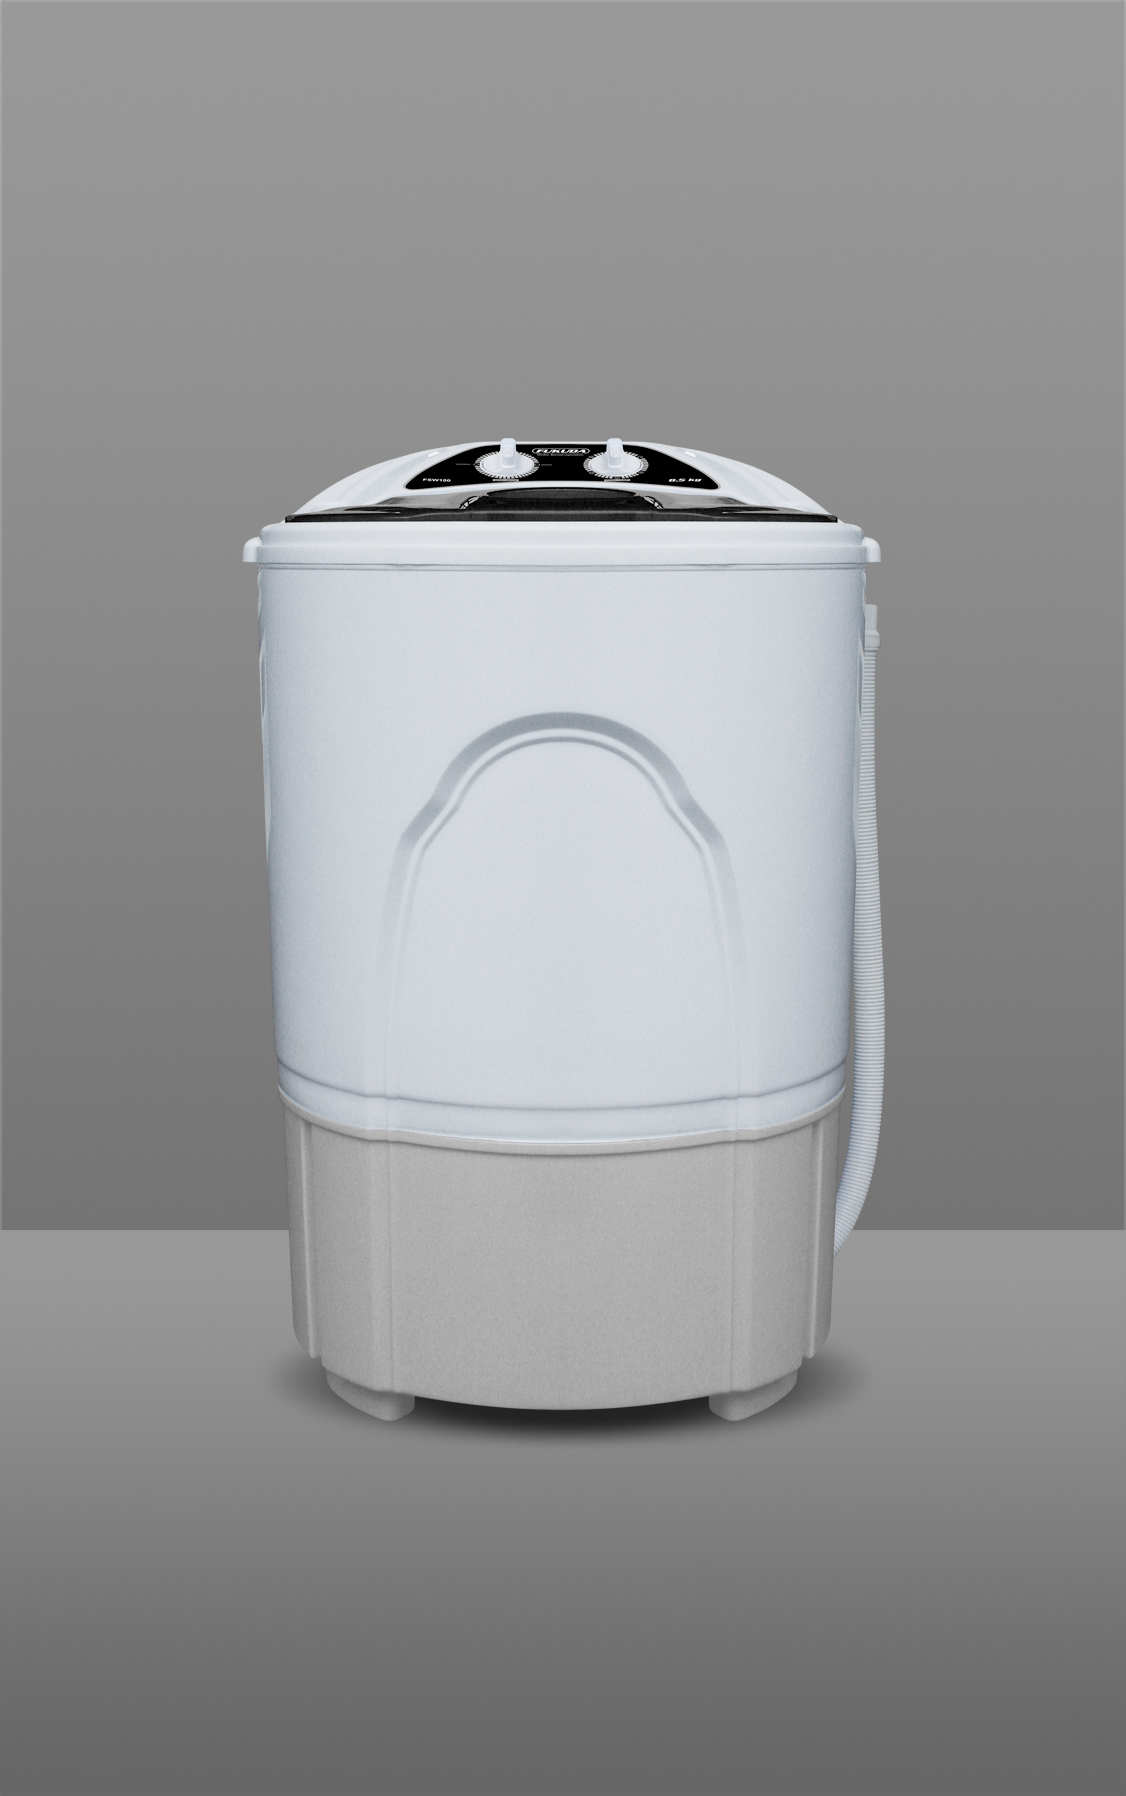 8.5 KG SINGLE TUB WASHING MACHINE